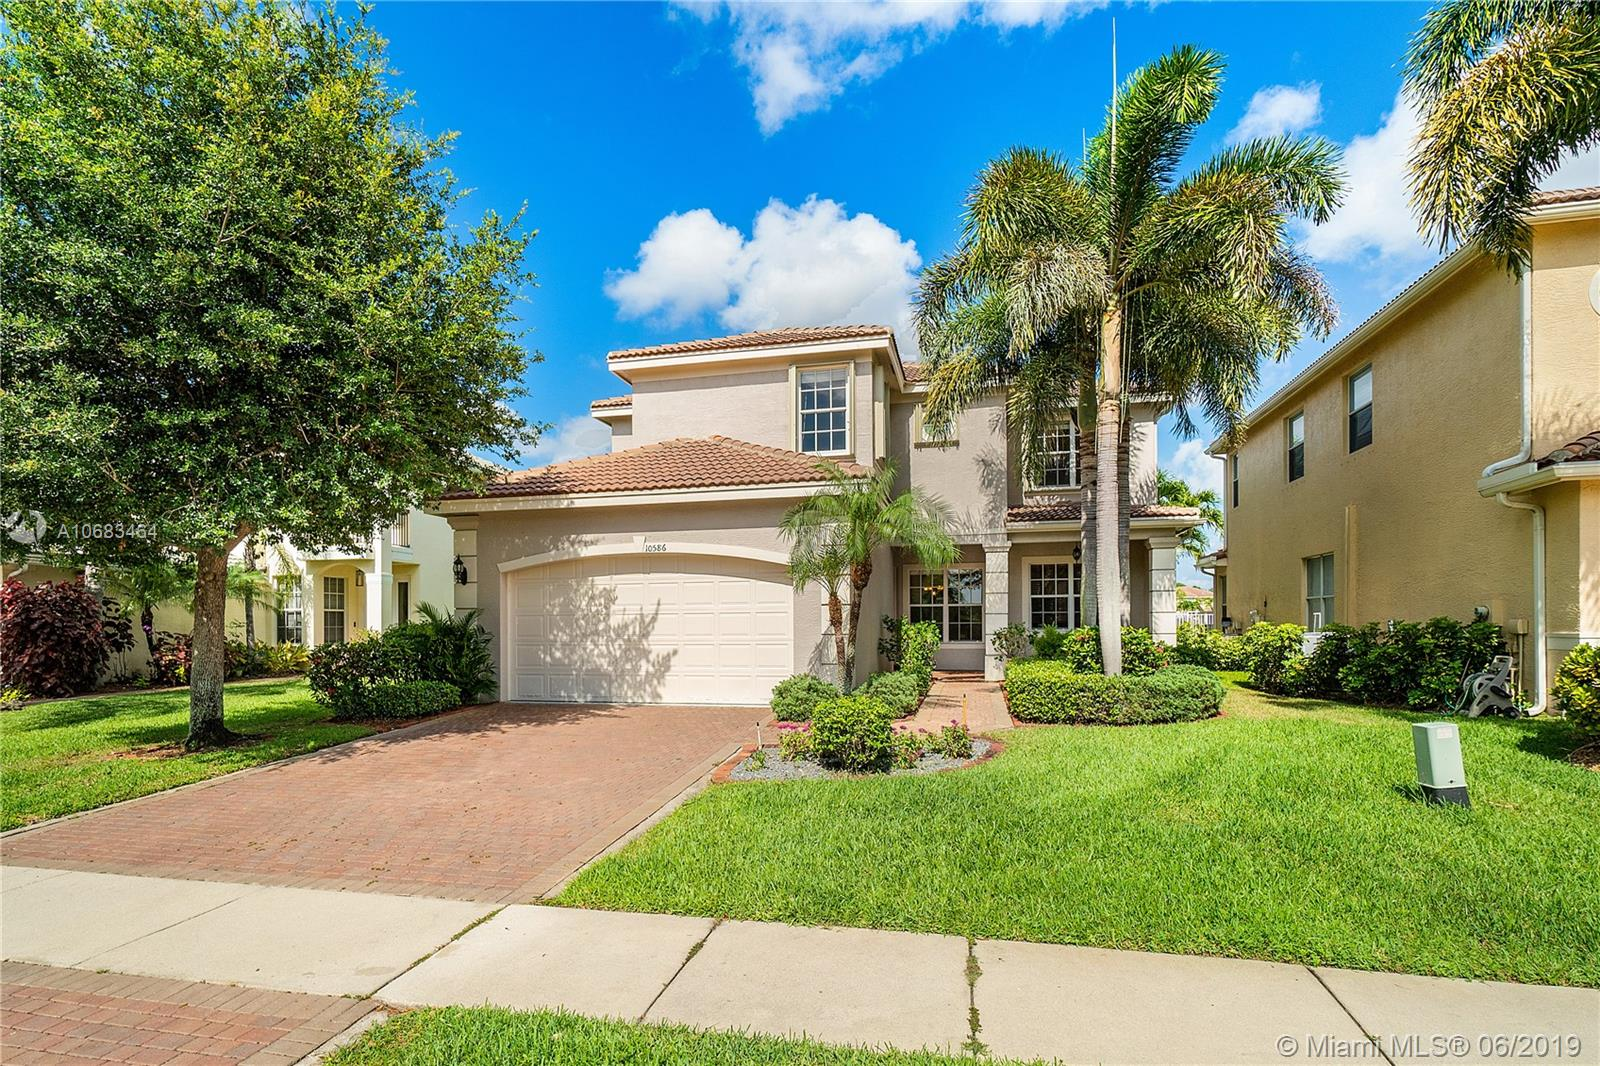 10586 Hilltop Meadow Pt Boynton Beach, FL 33473